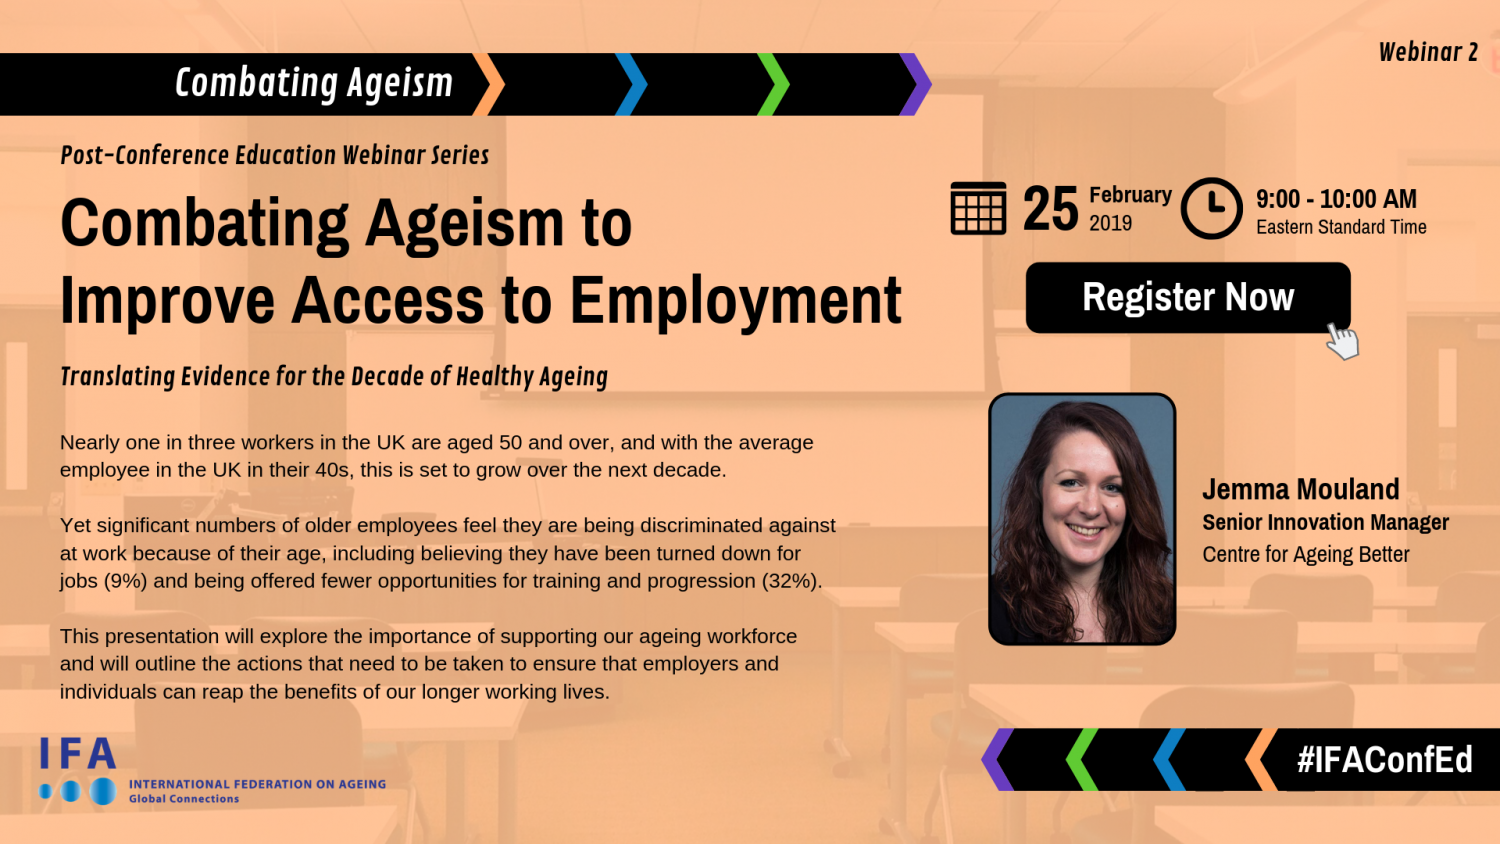 Webinar Announcement: Combating Ageism to Improve Access to Employment